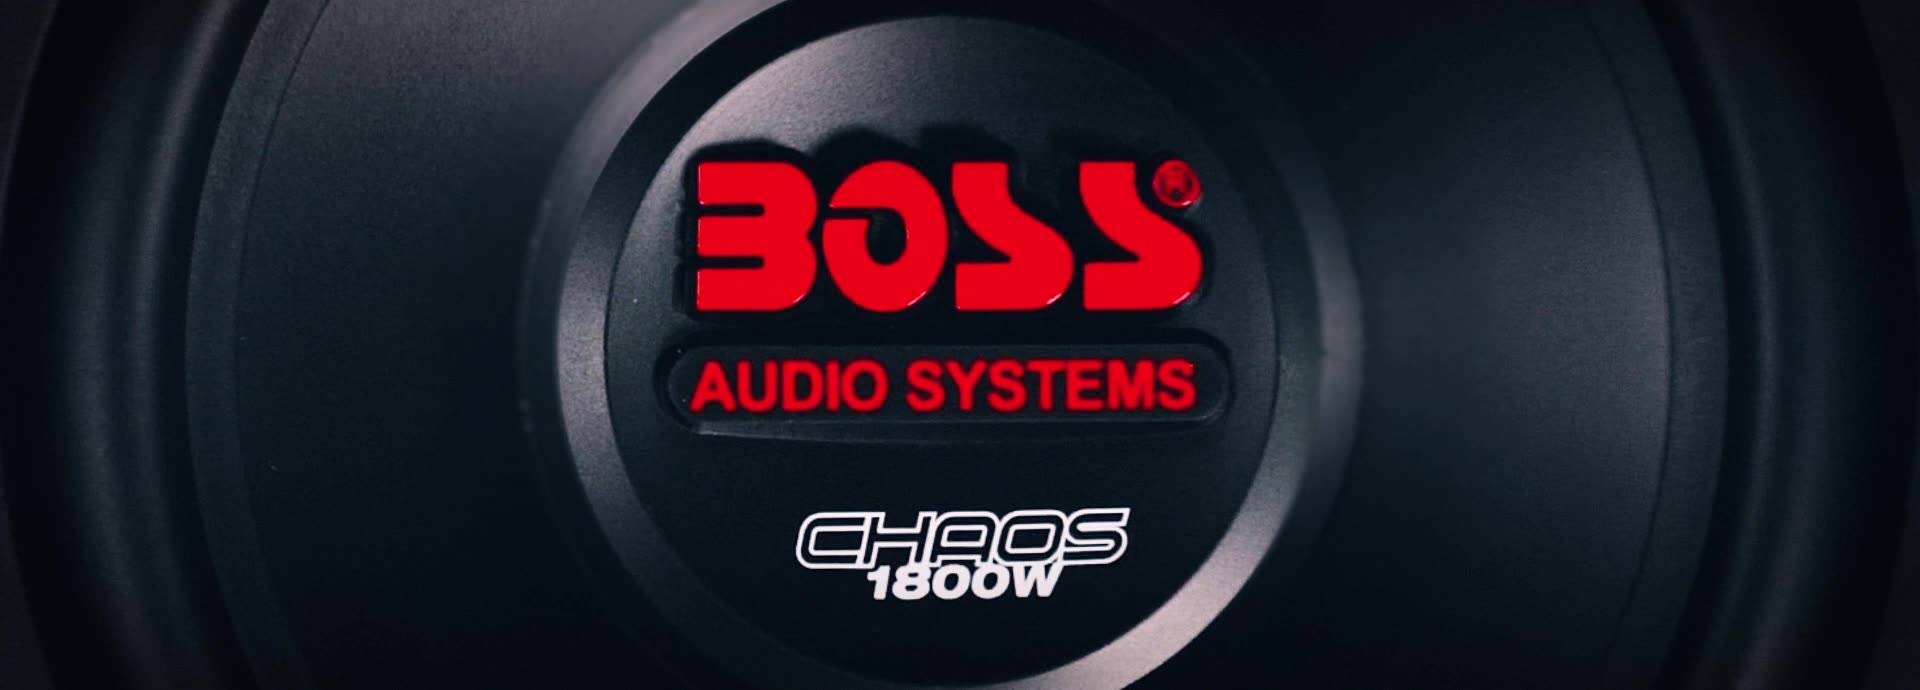 About Boss Audio Systems Homepage